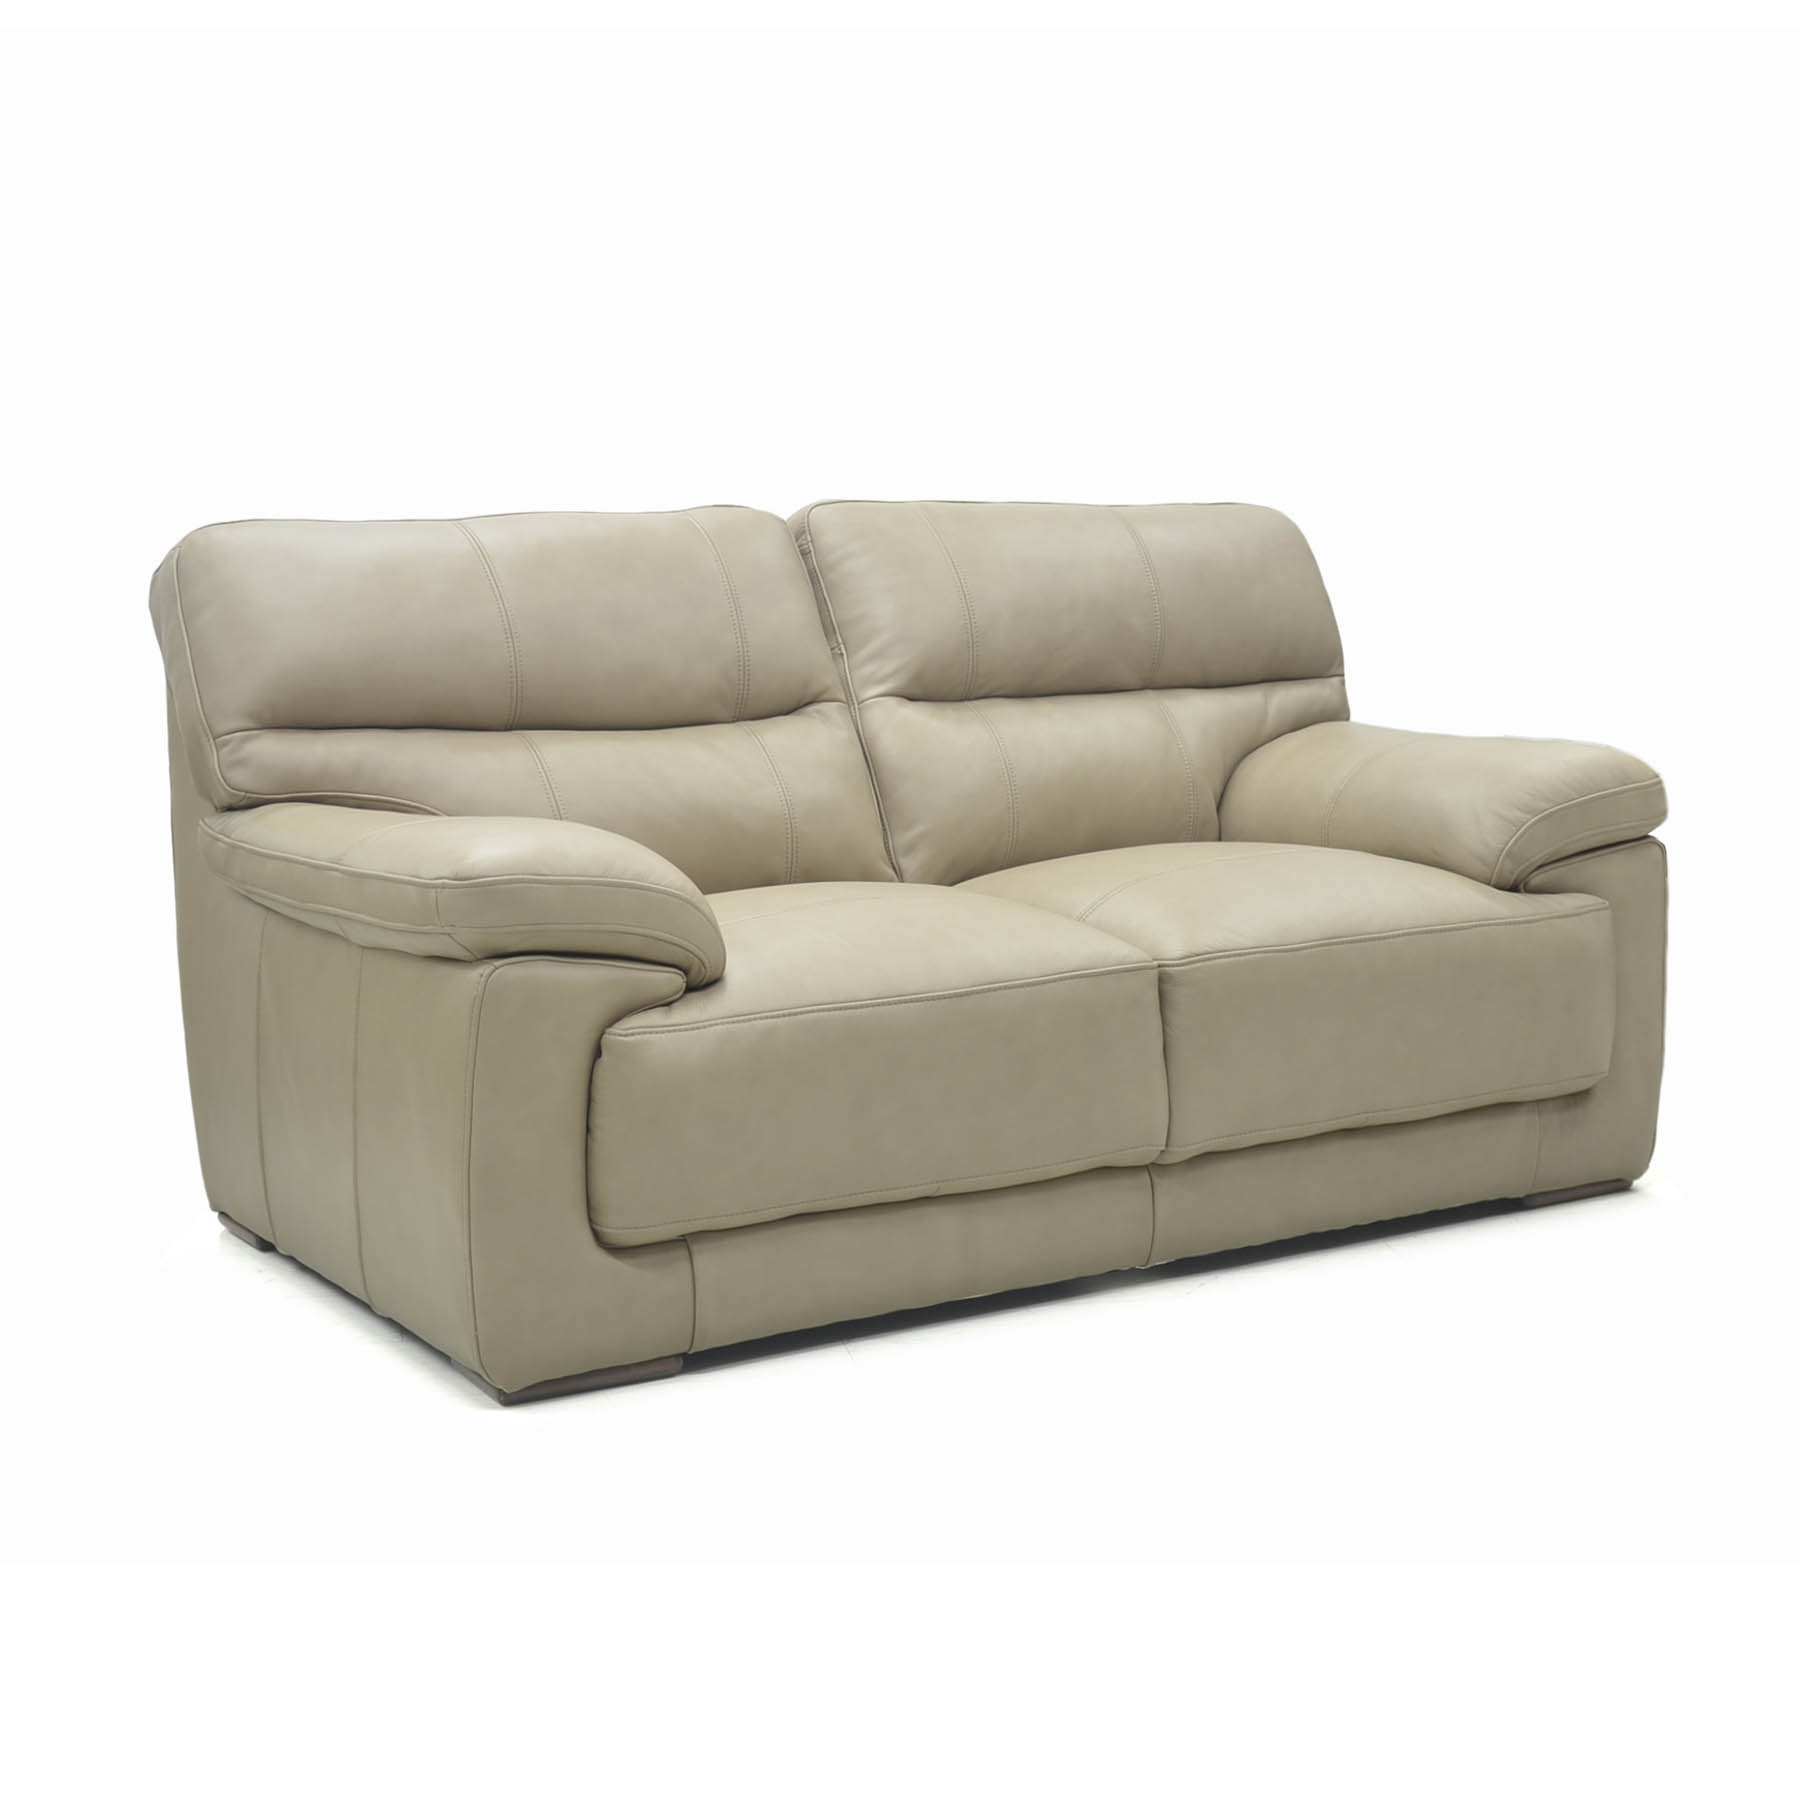 Florence Medium 2 Seater Sofa Pertaining To Florence Medium Sofas (Image 11 of 15)